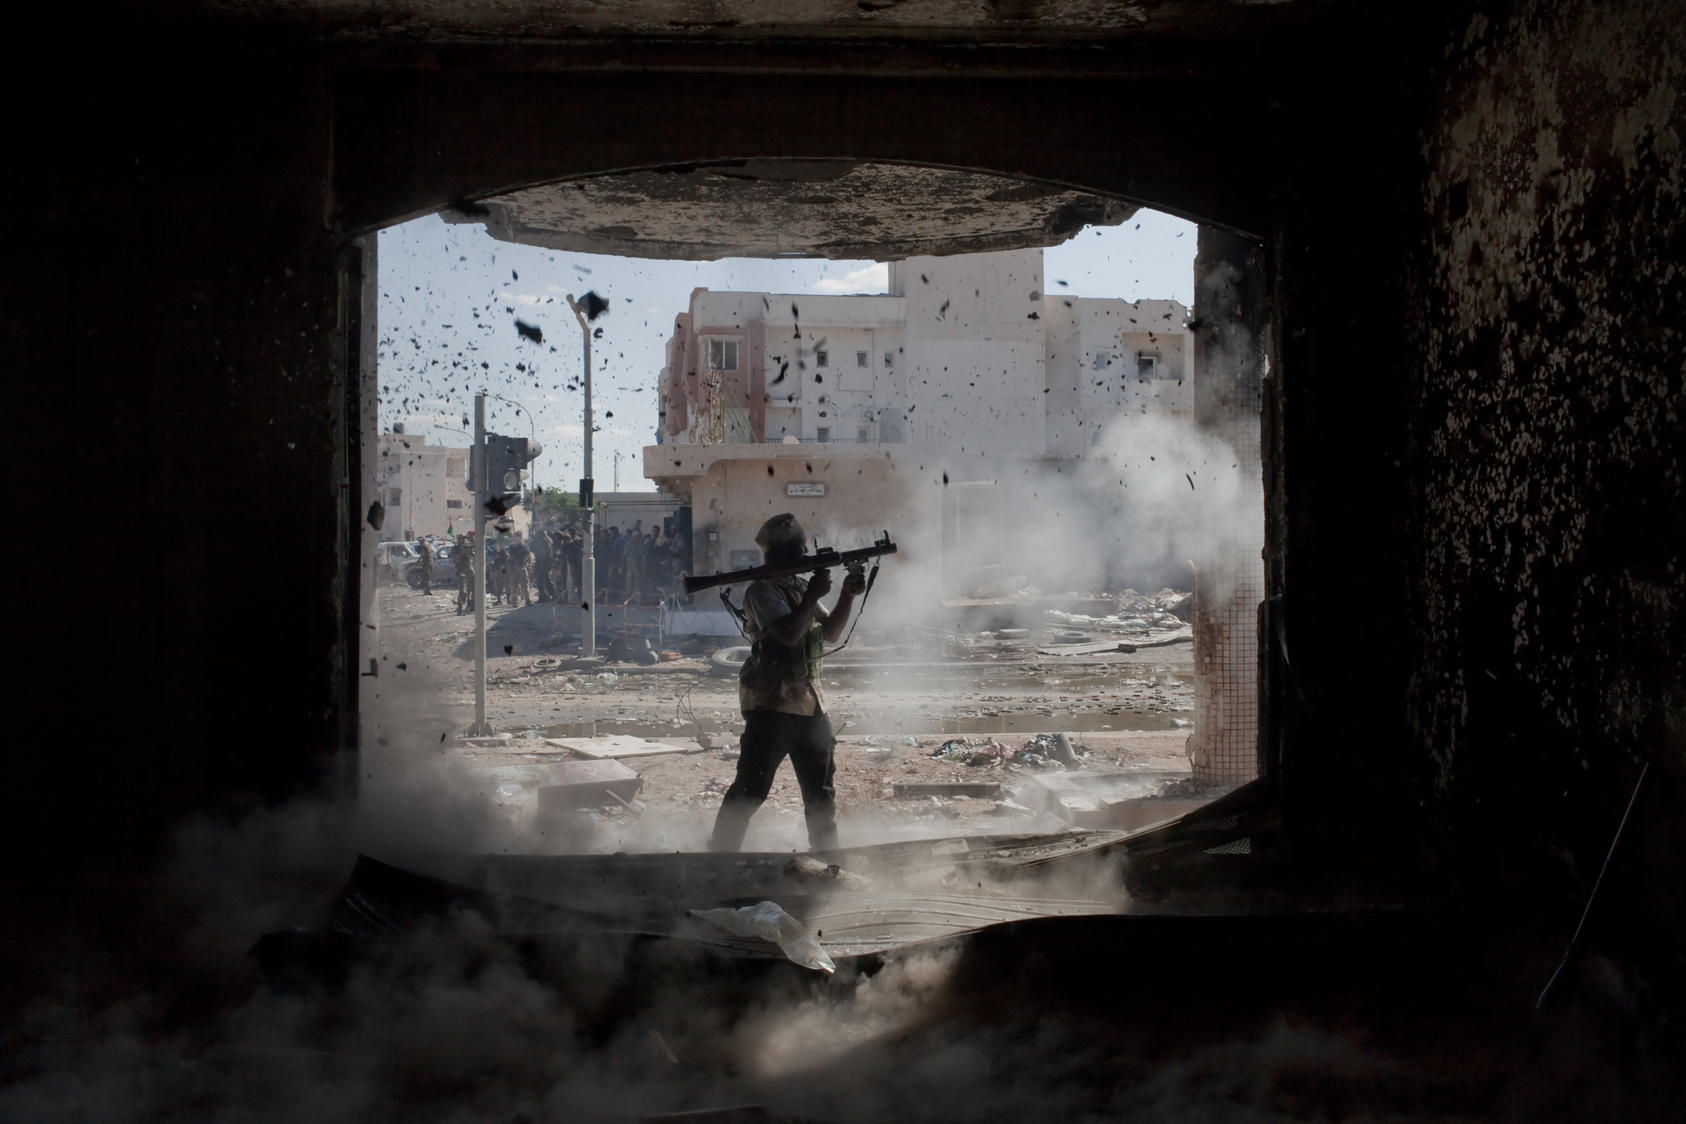 An anti-Gadhafi fighter fires a rocket-propelled grenade during fighting in Sirte, Libya.